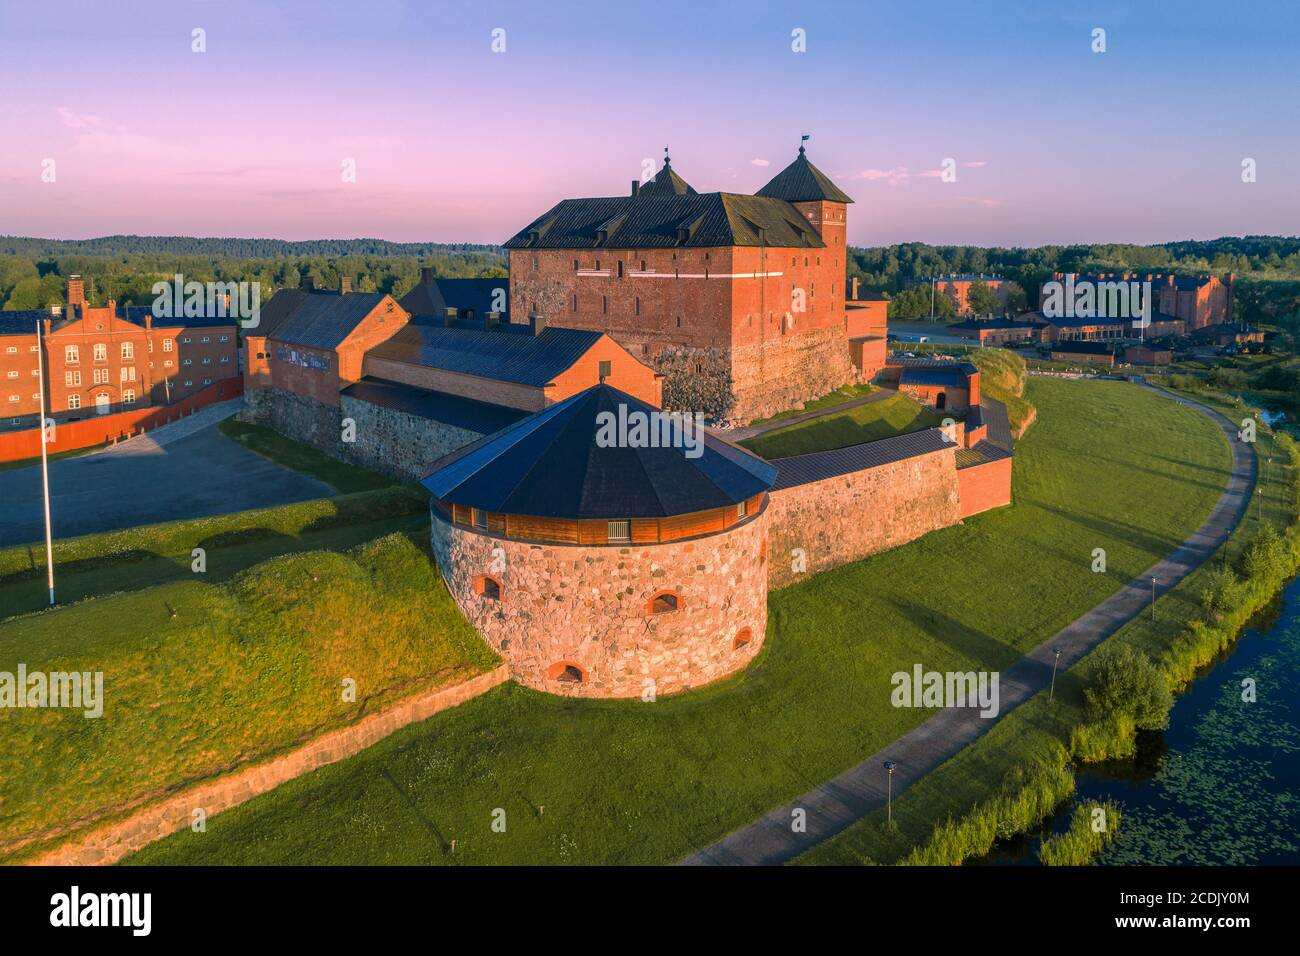 The ancient fortress of the city of Hameenlinna close-up on a sunny July morning (shot from a quadcopter). Finland Stock Photo